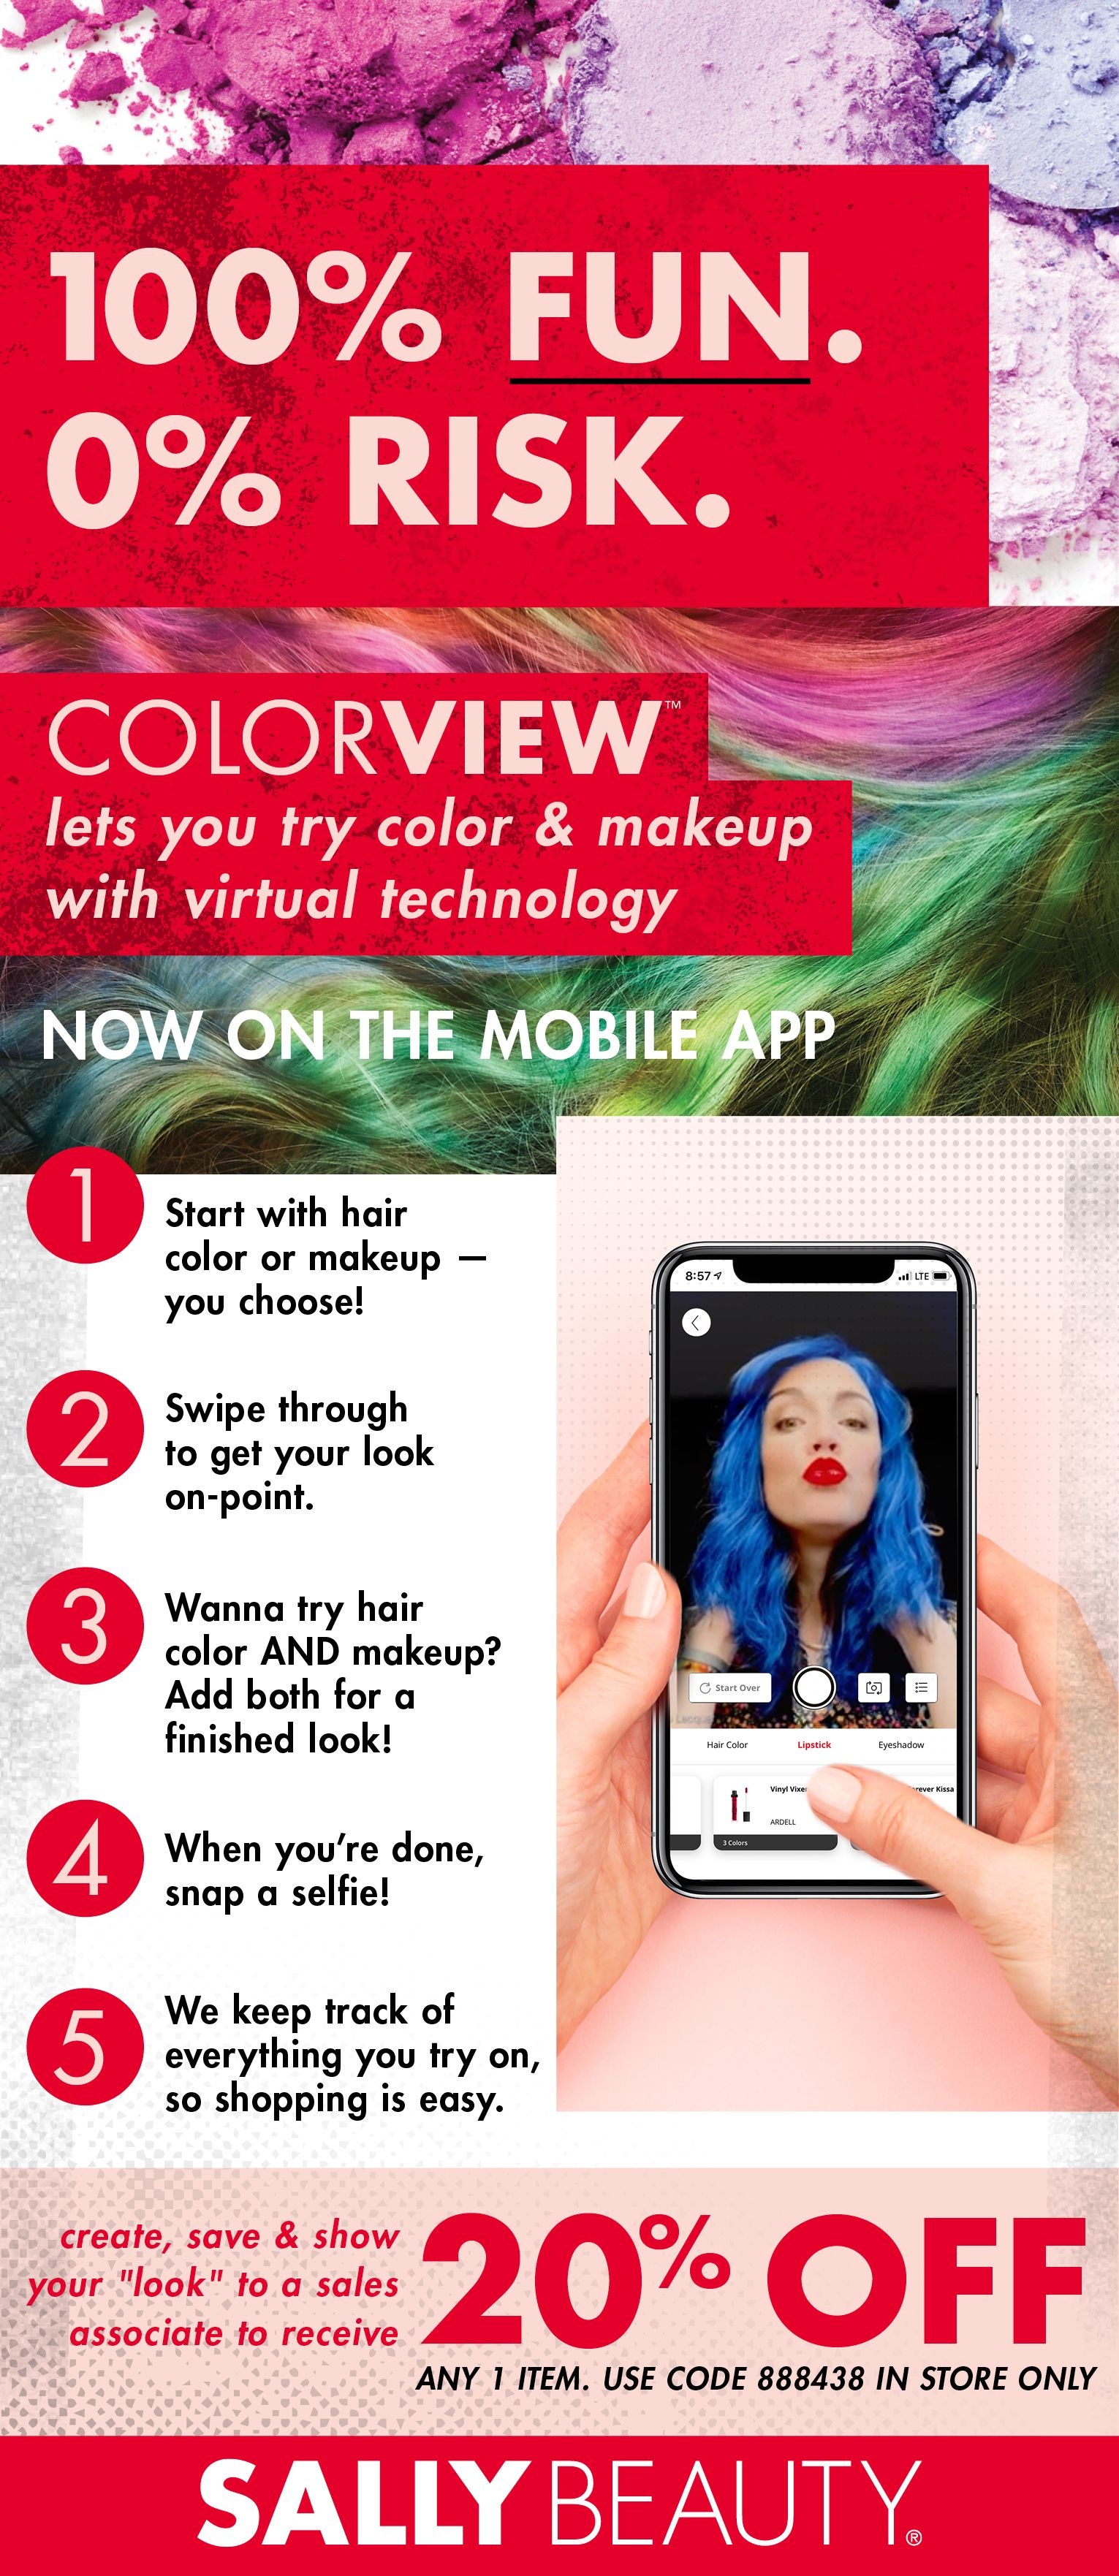 Now you can try hair color and cosmetics without the